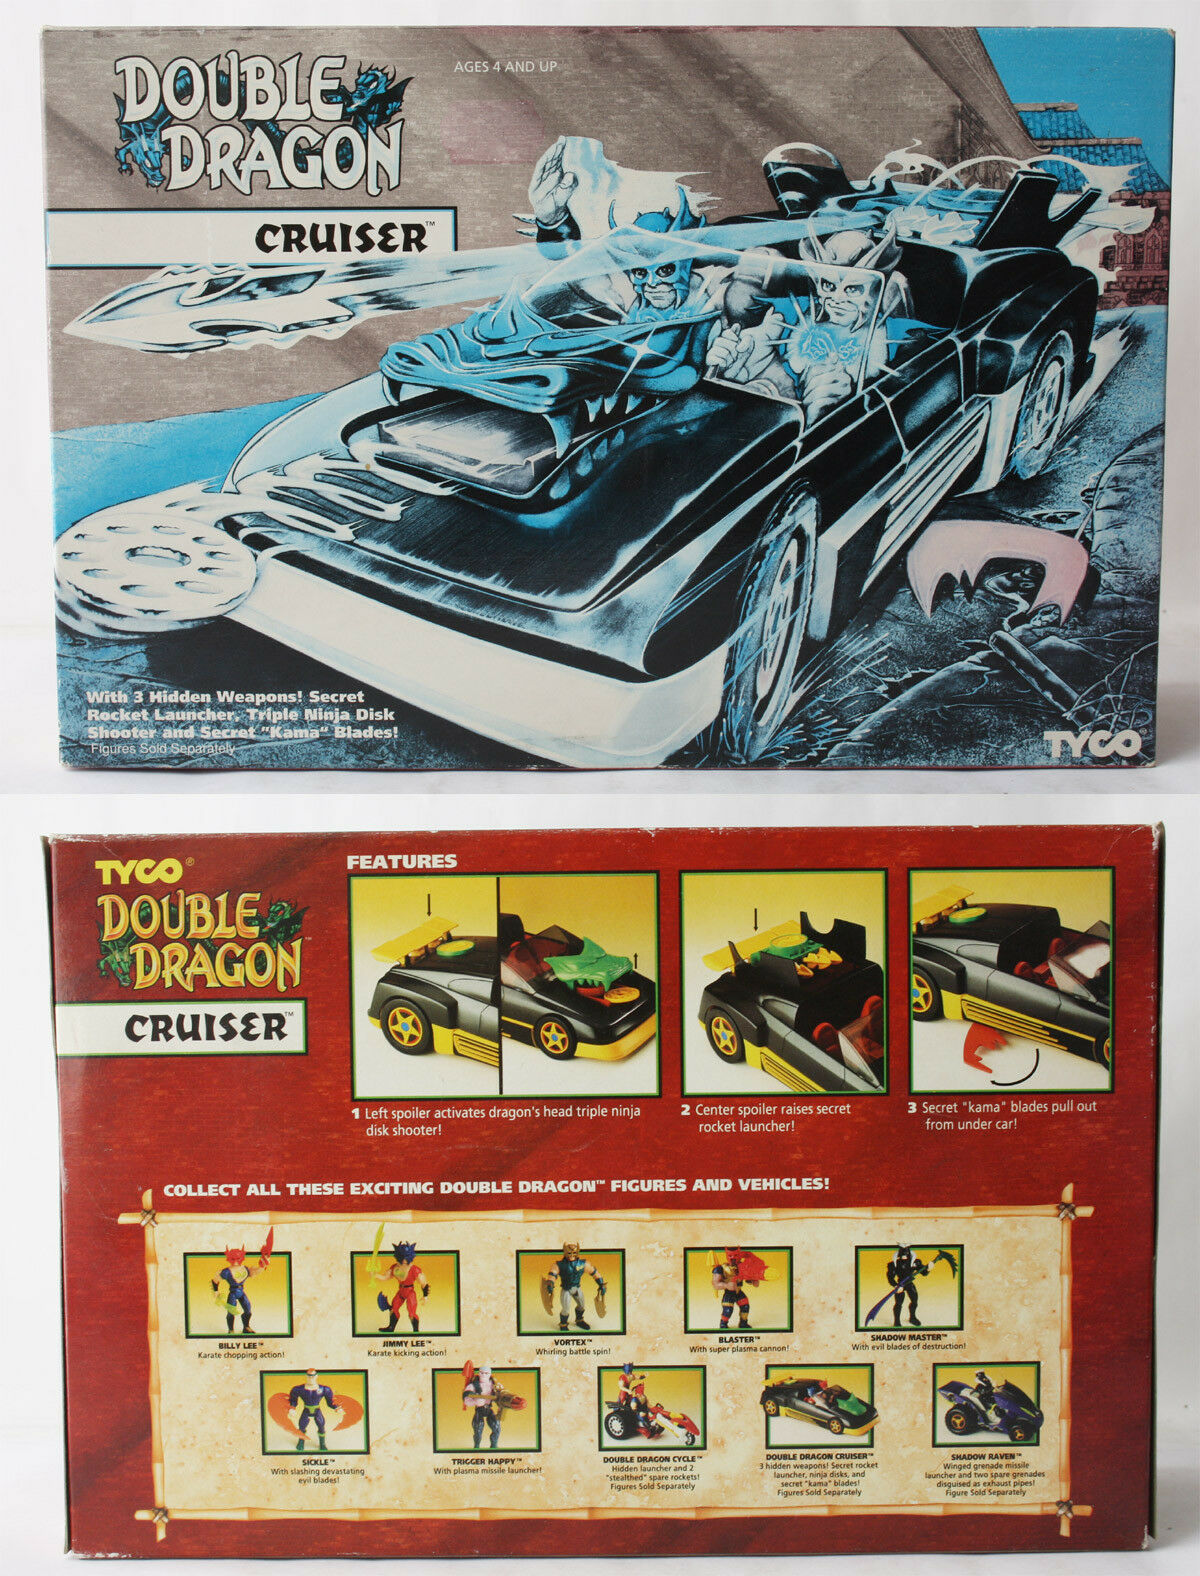 RARE VINTAGE 1993 DOUBLE DRAGON CRUISER CAR TYCO NEW SEALED MISB